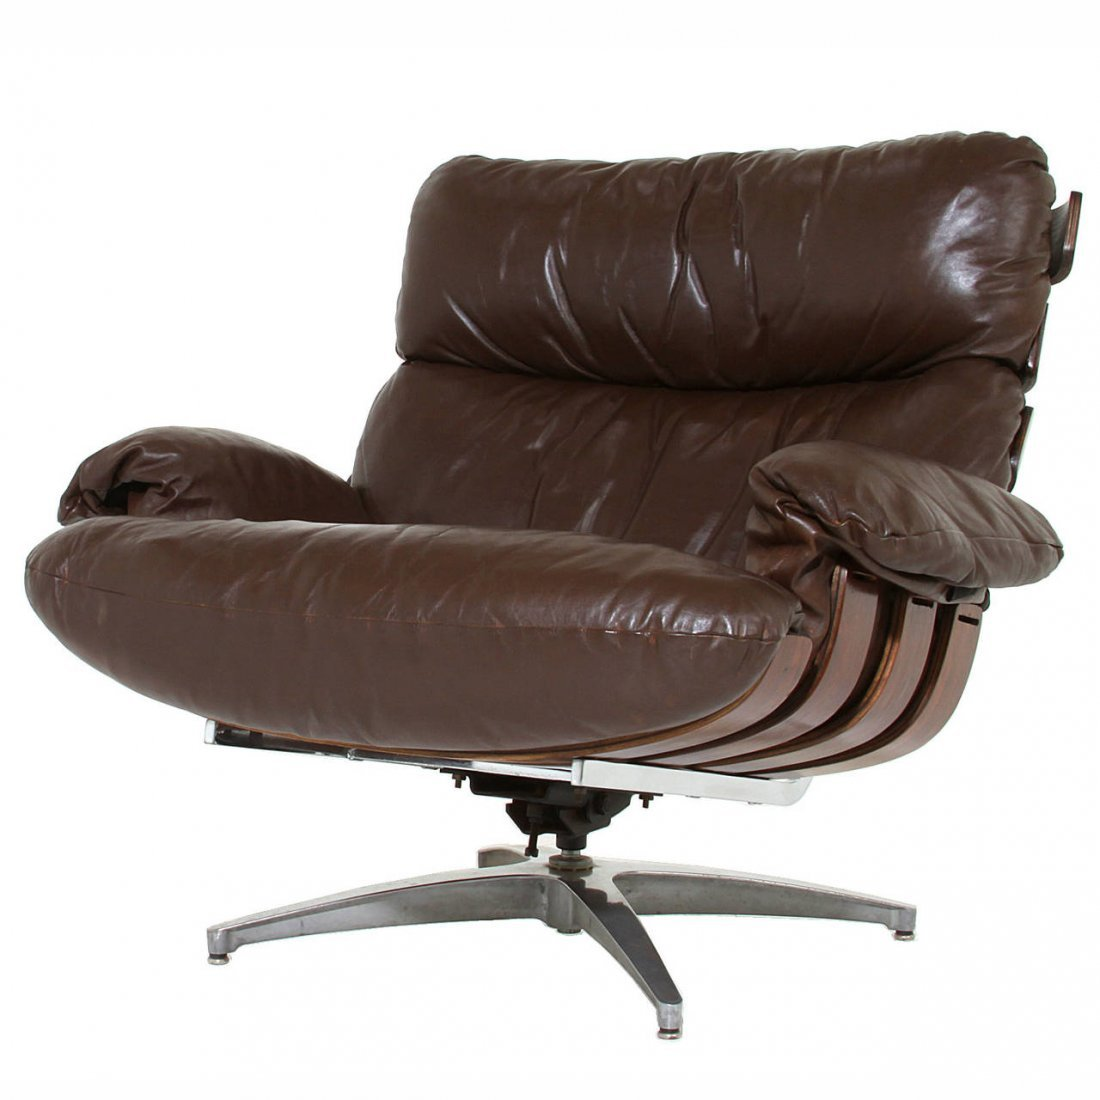 Directional rosewood and leather swivel chair